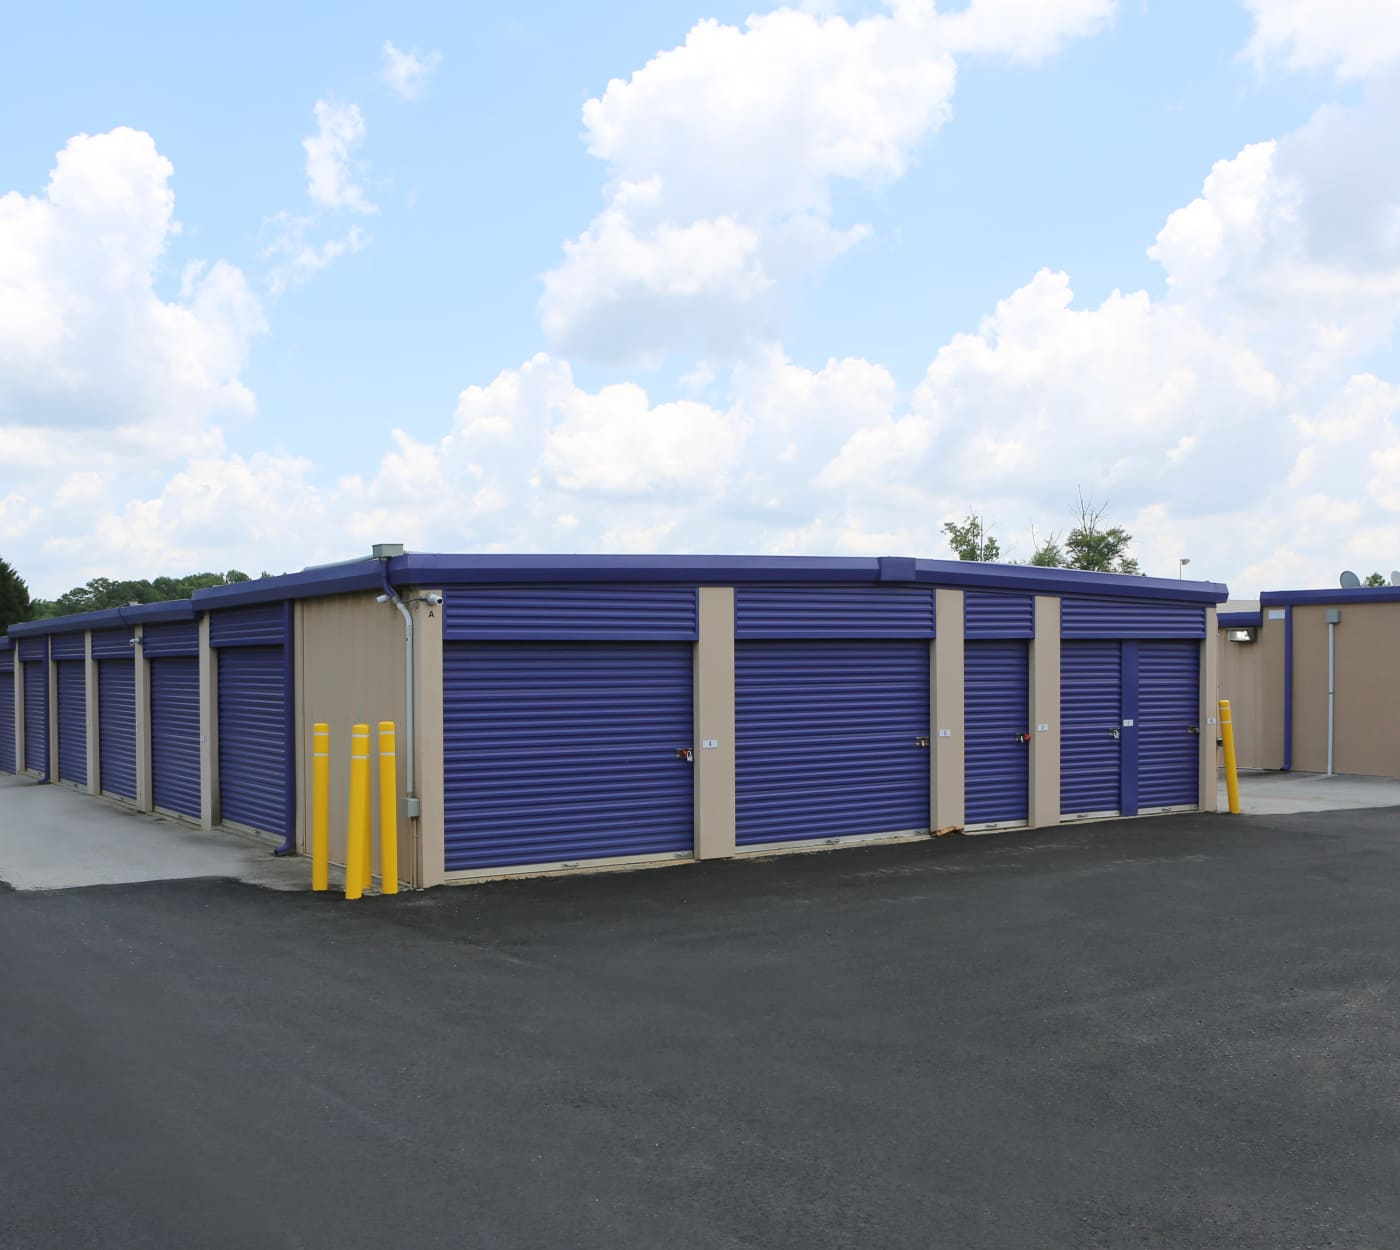 Ground-floor units at StoreSmart Self-Storage in Loganville, Georgia